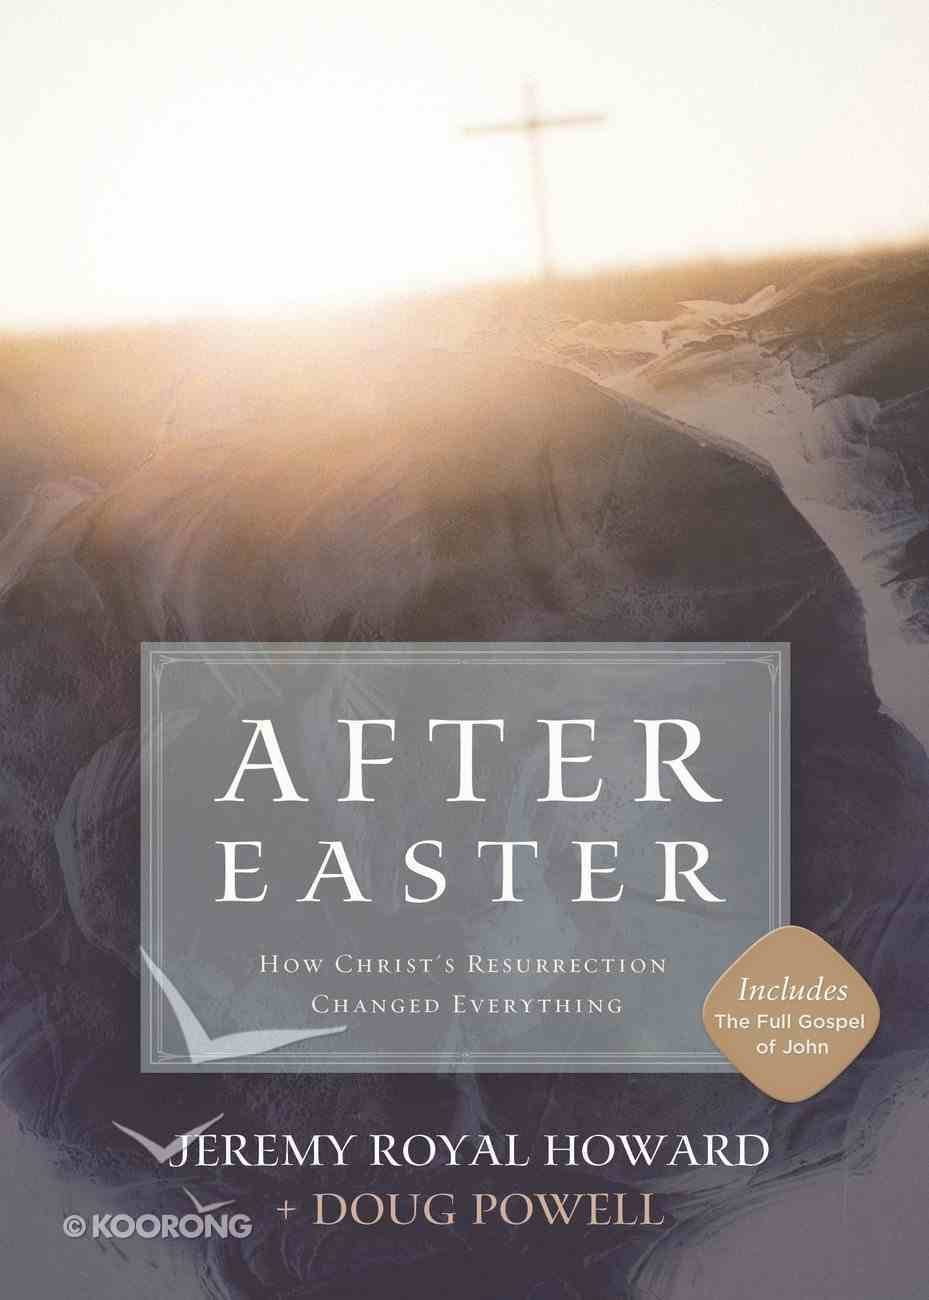 After Easter: How the Resurrection of Christ Changes Your Life Forever Hardback